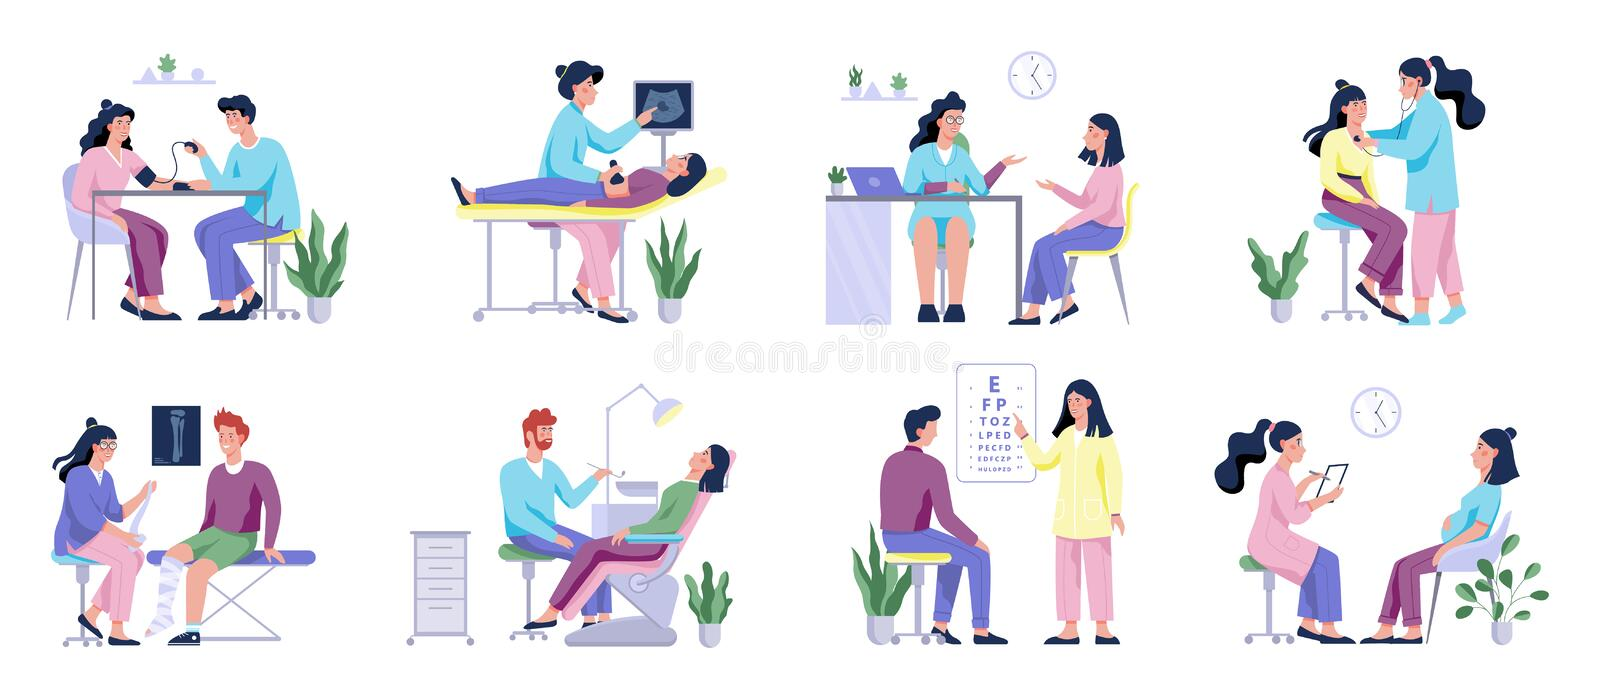 Full medical checkup set with patient and doctors. Idea of healthcare. Ophthalmologist and dentist, surgeon and ultrasound. Isolated flat illustration royalty free illustration